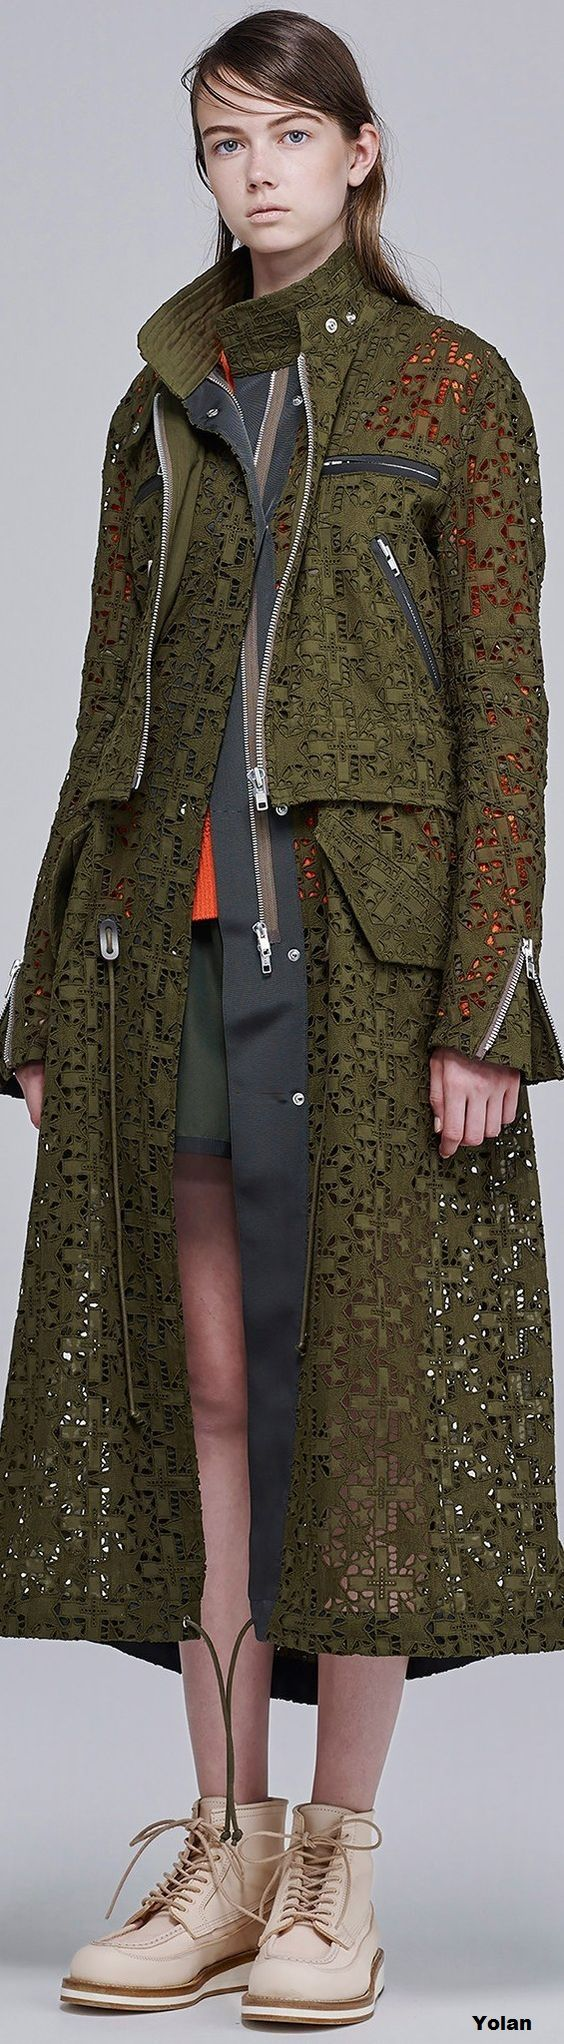 Sacai - Resort 2016